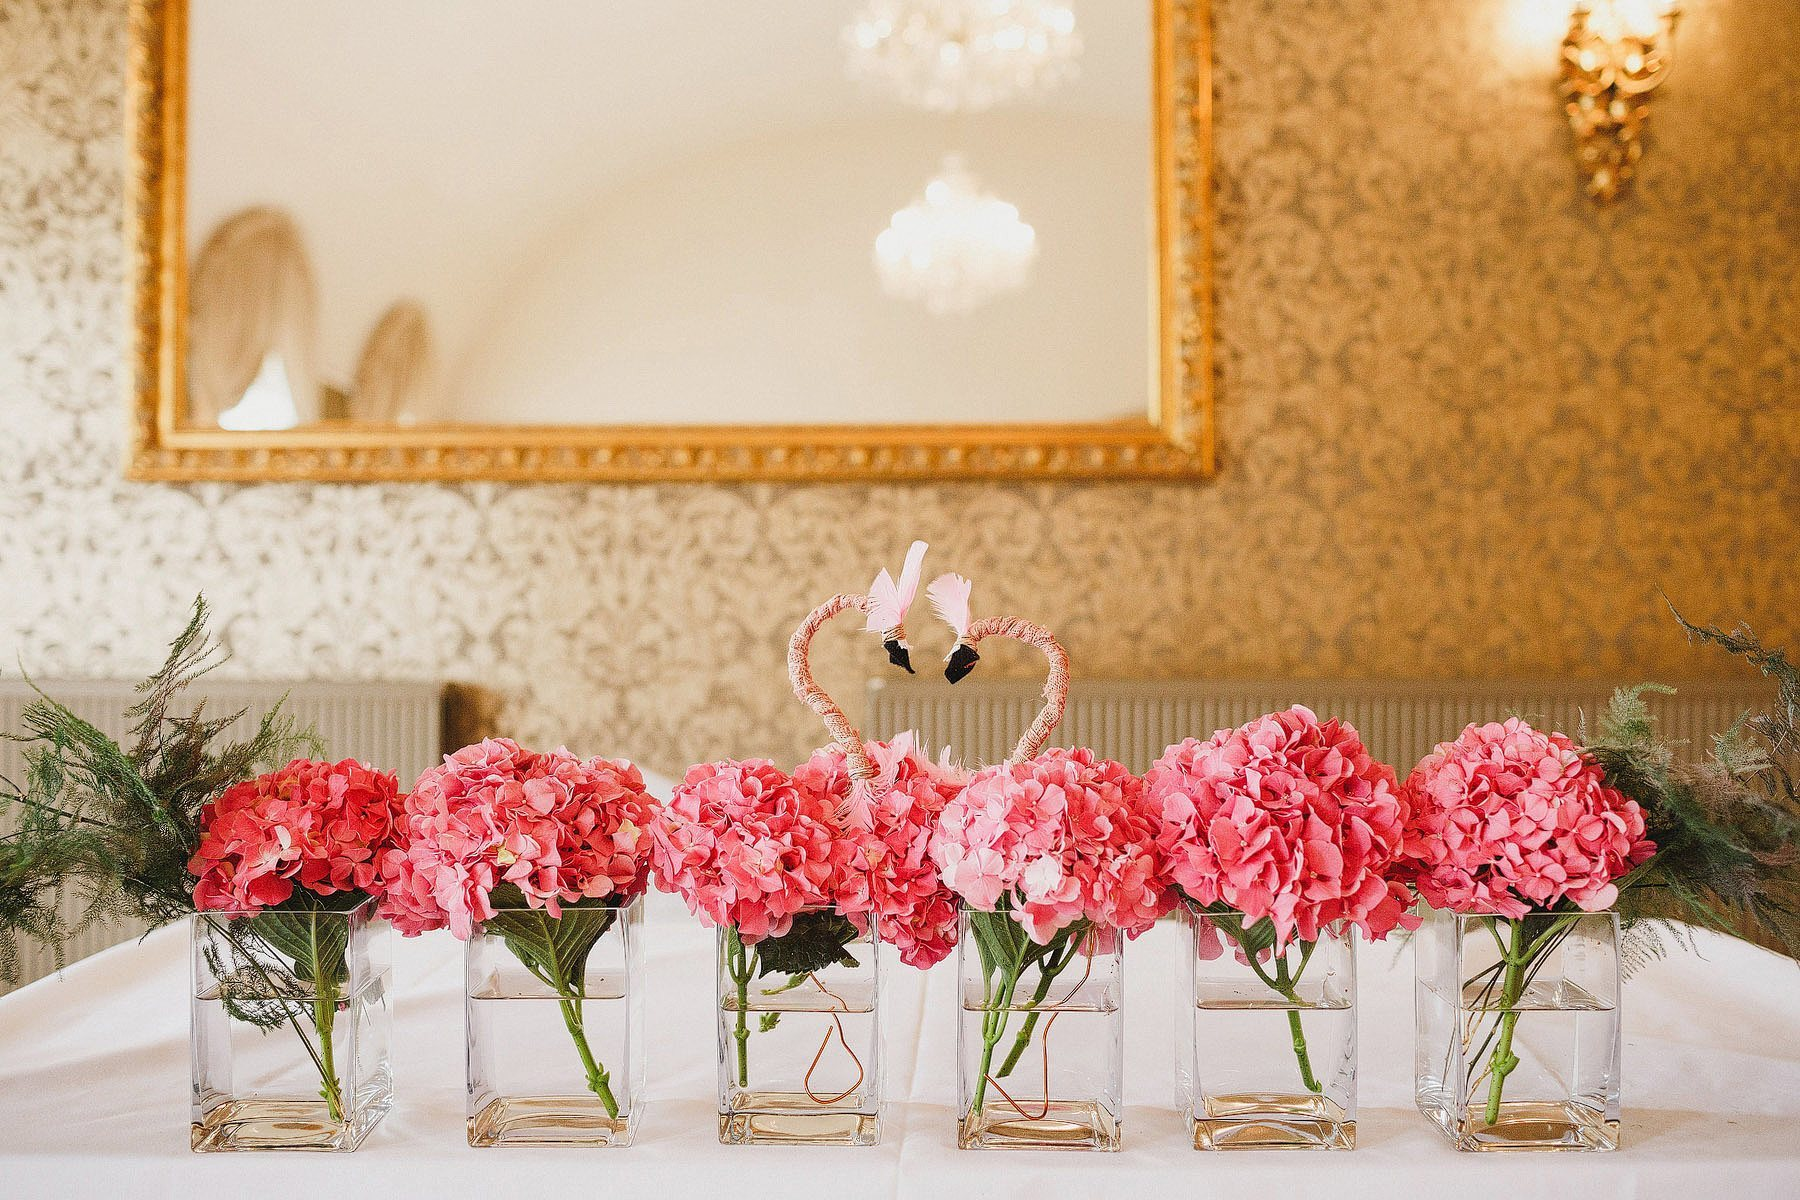 flamingo flowers at a wedding